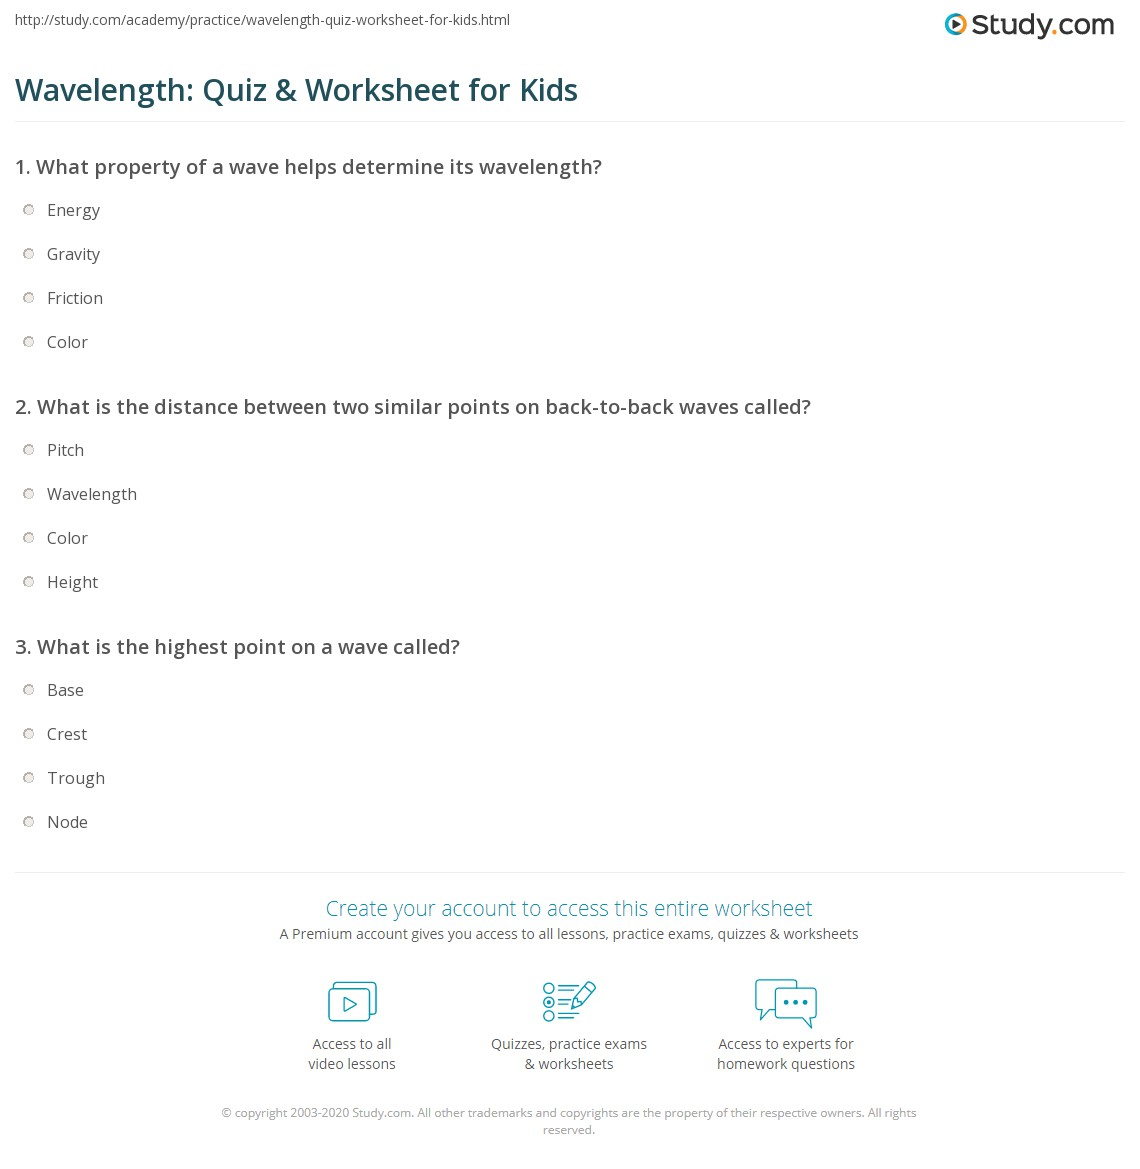 worksheet Wavelength Worksheet wavelength quiz worksheet for kids study com print definition lesson worksheet